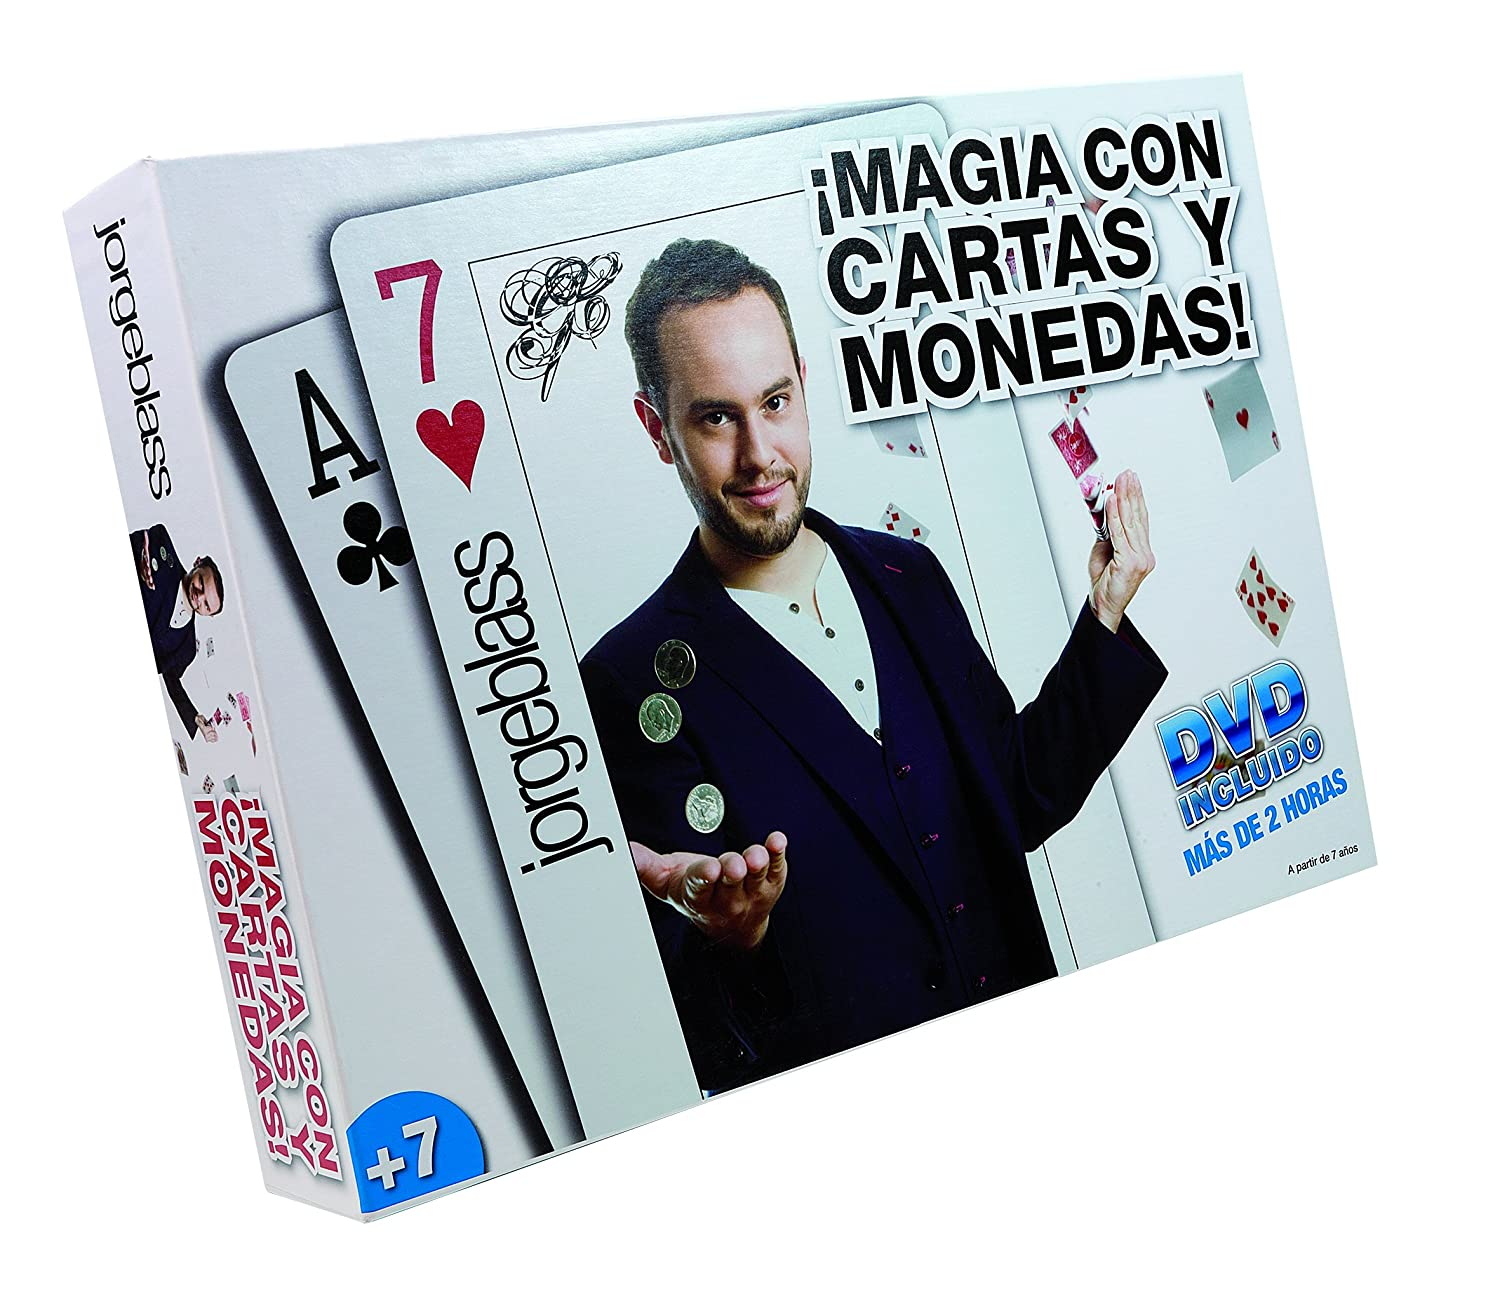 Mistral Enterprise - Jorge Blass, Magia con Cartas y Monedas (15003)